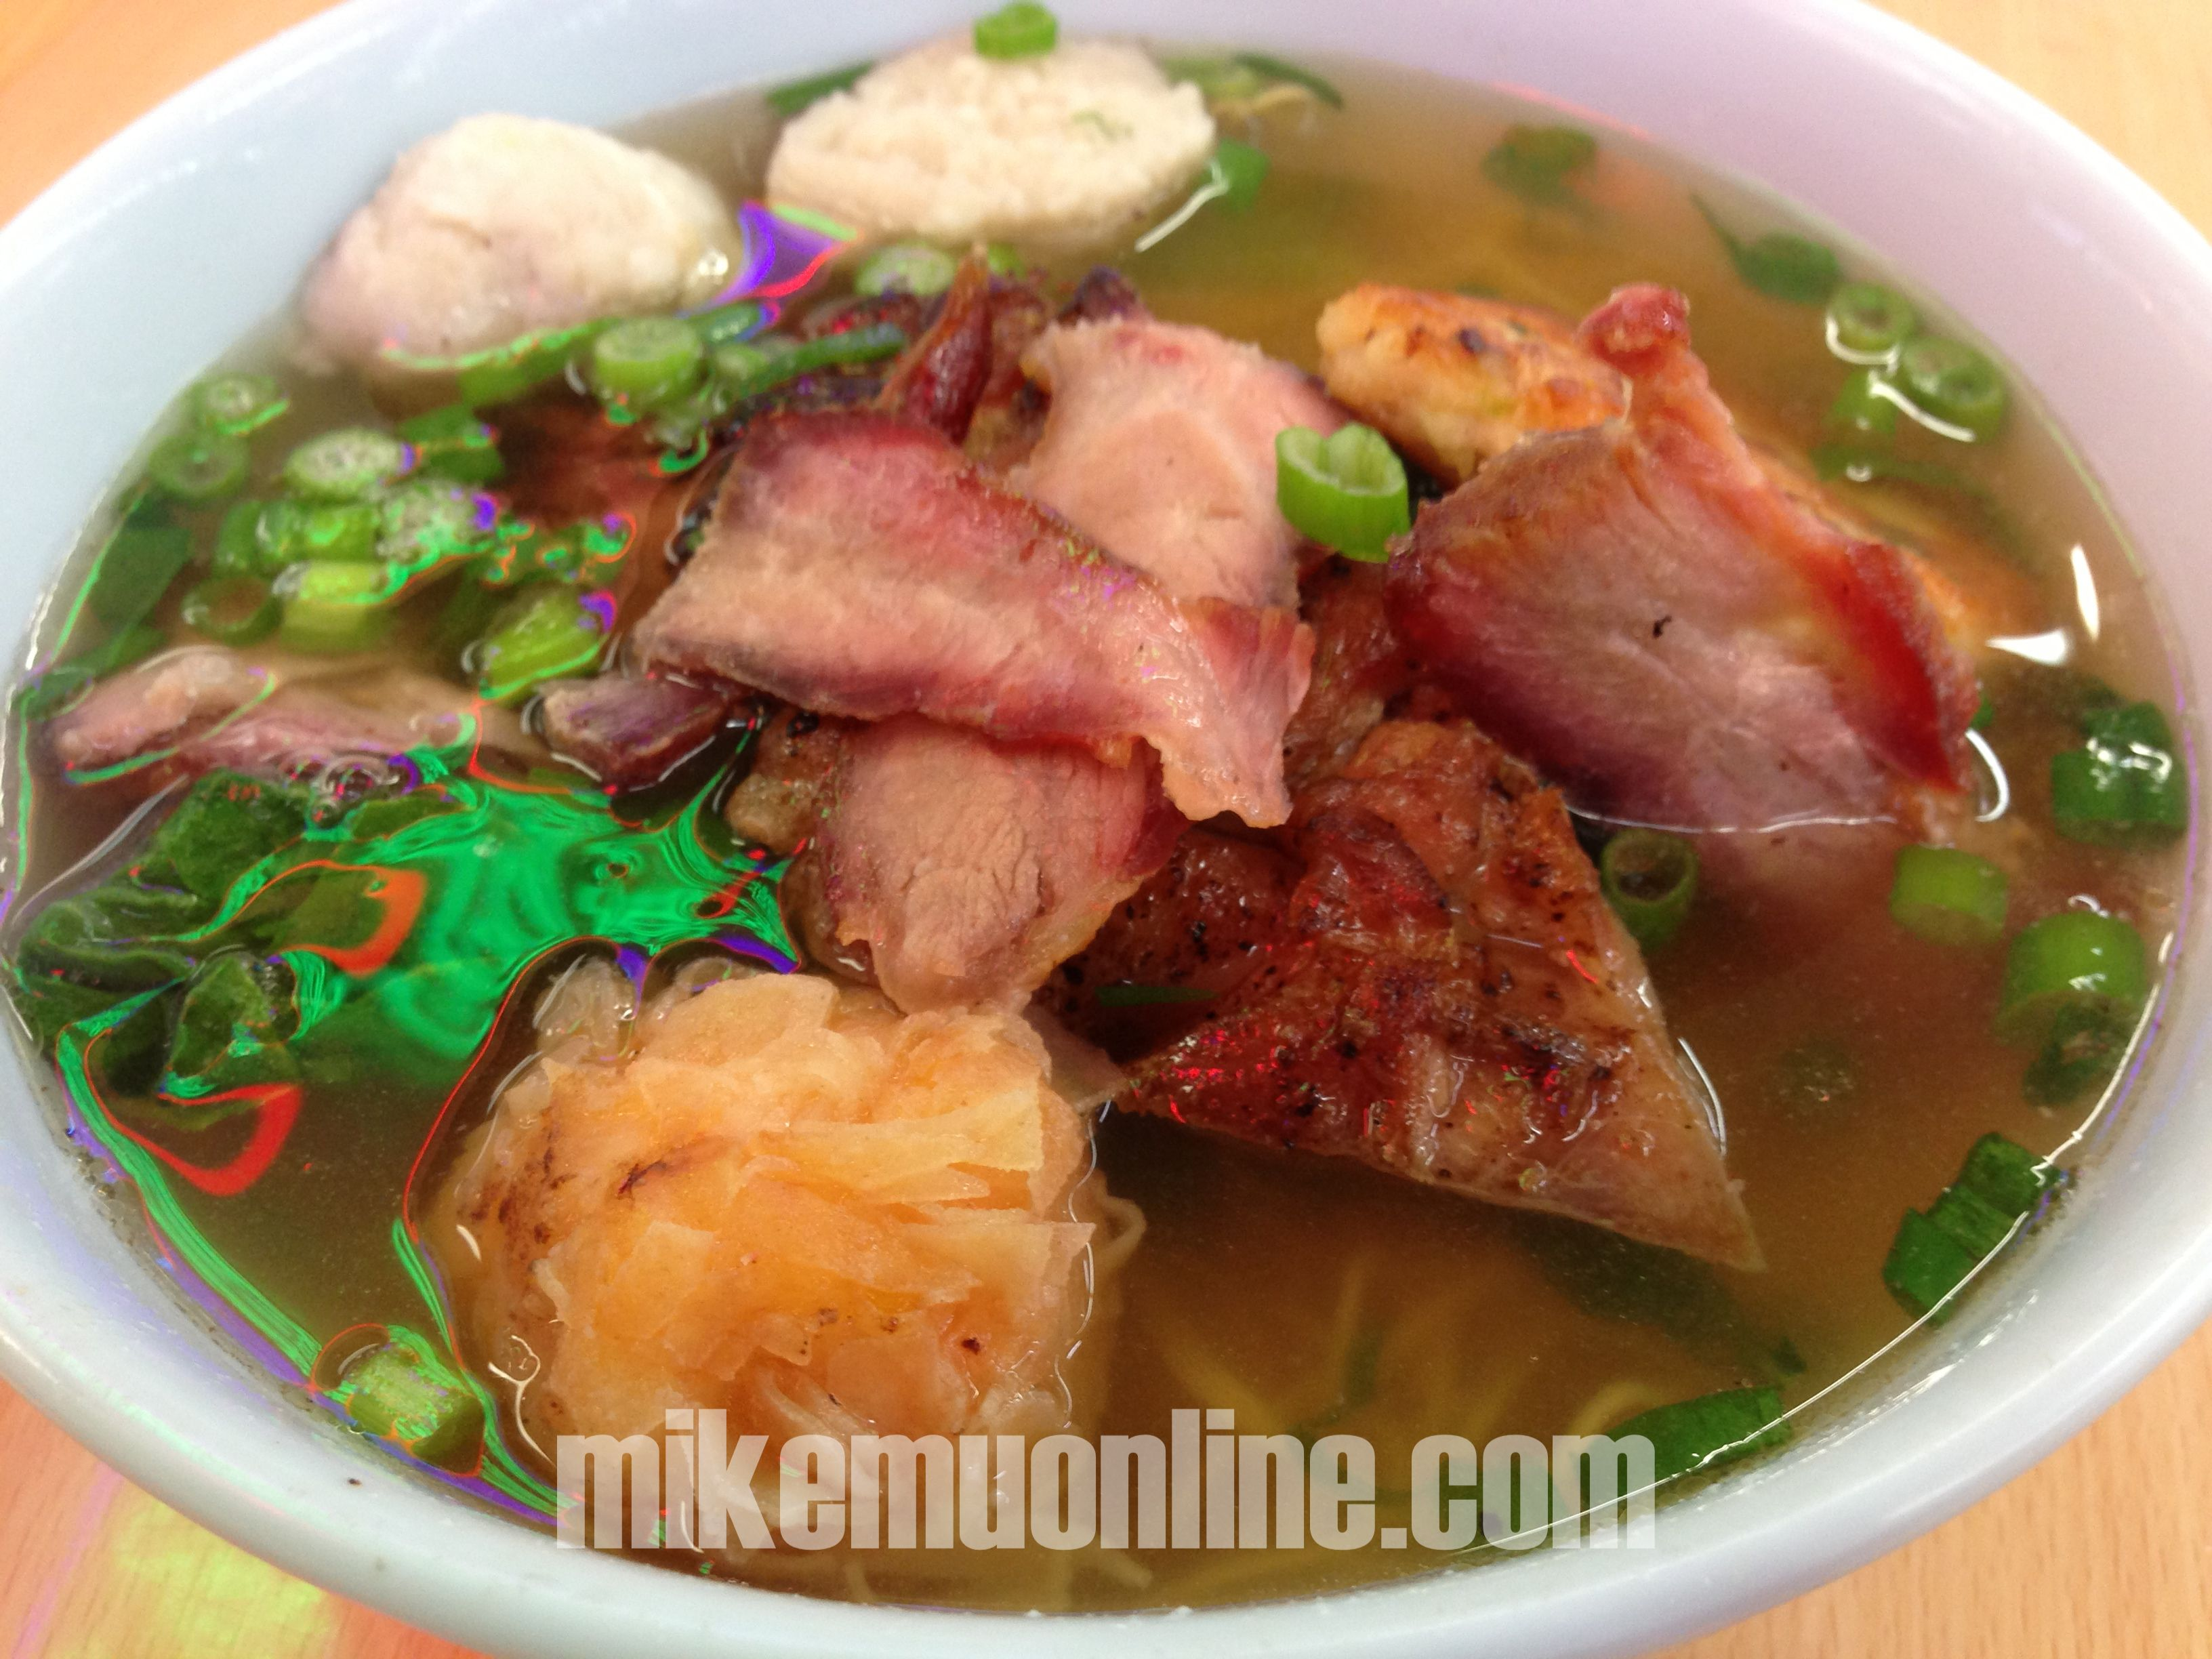 Yum Cha Cafe House Special Egg Noodle Soup 4 79 Food Noodle Soup Yum